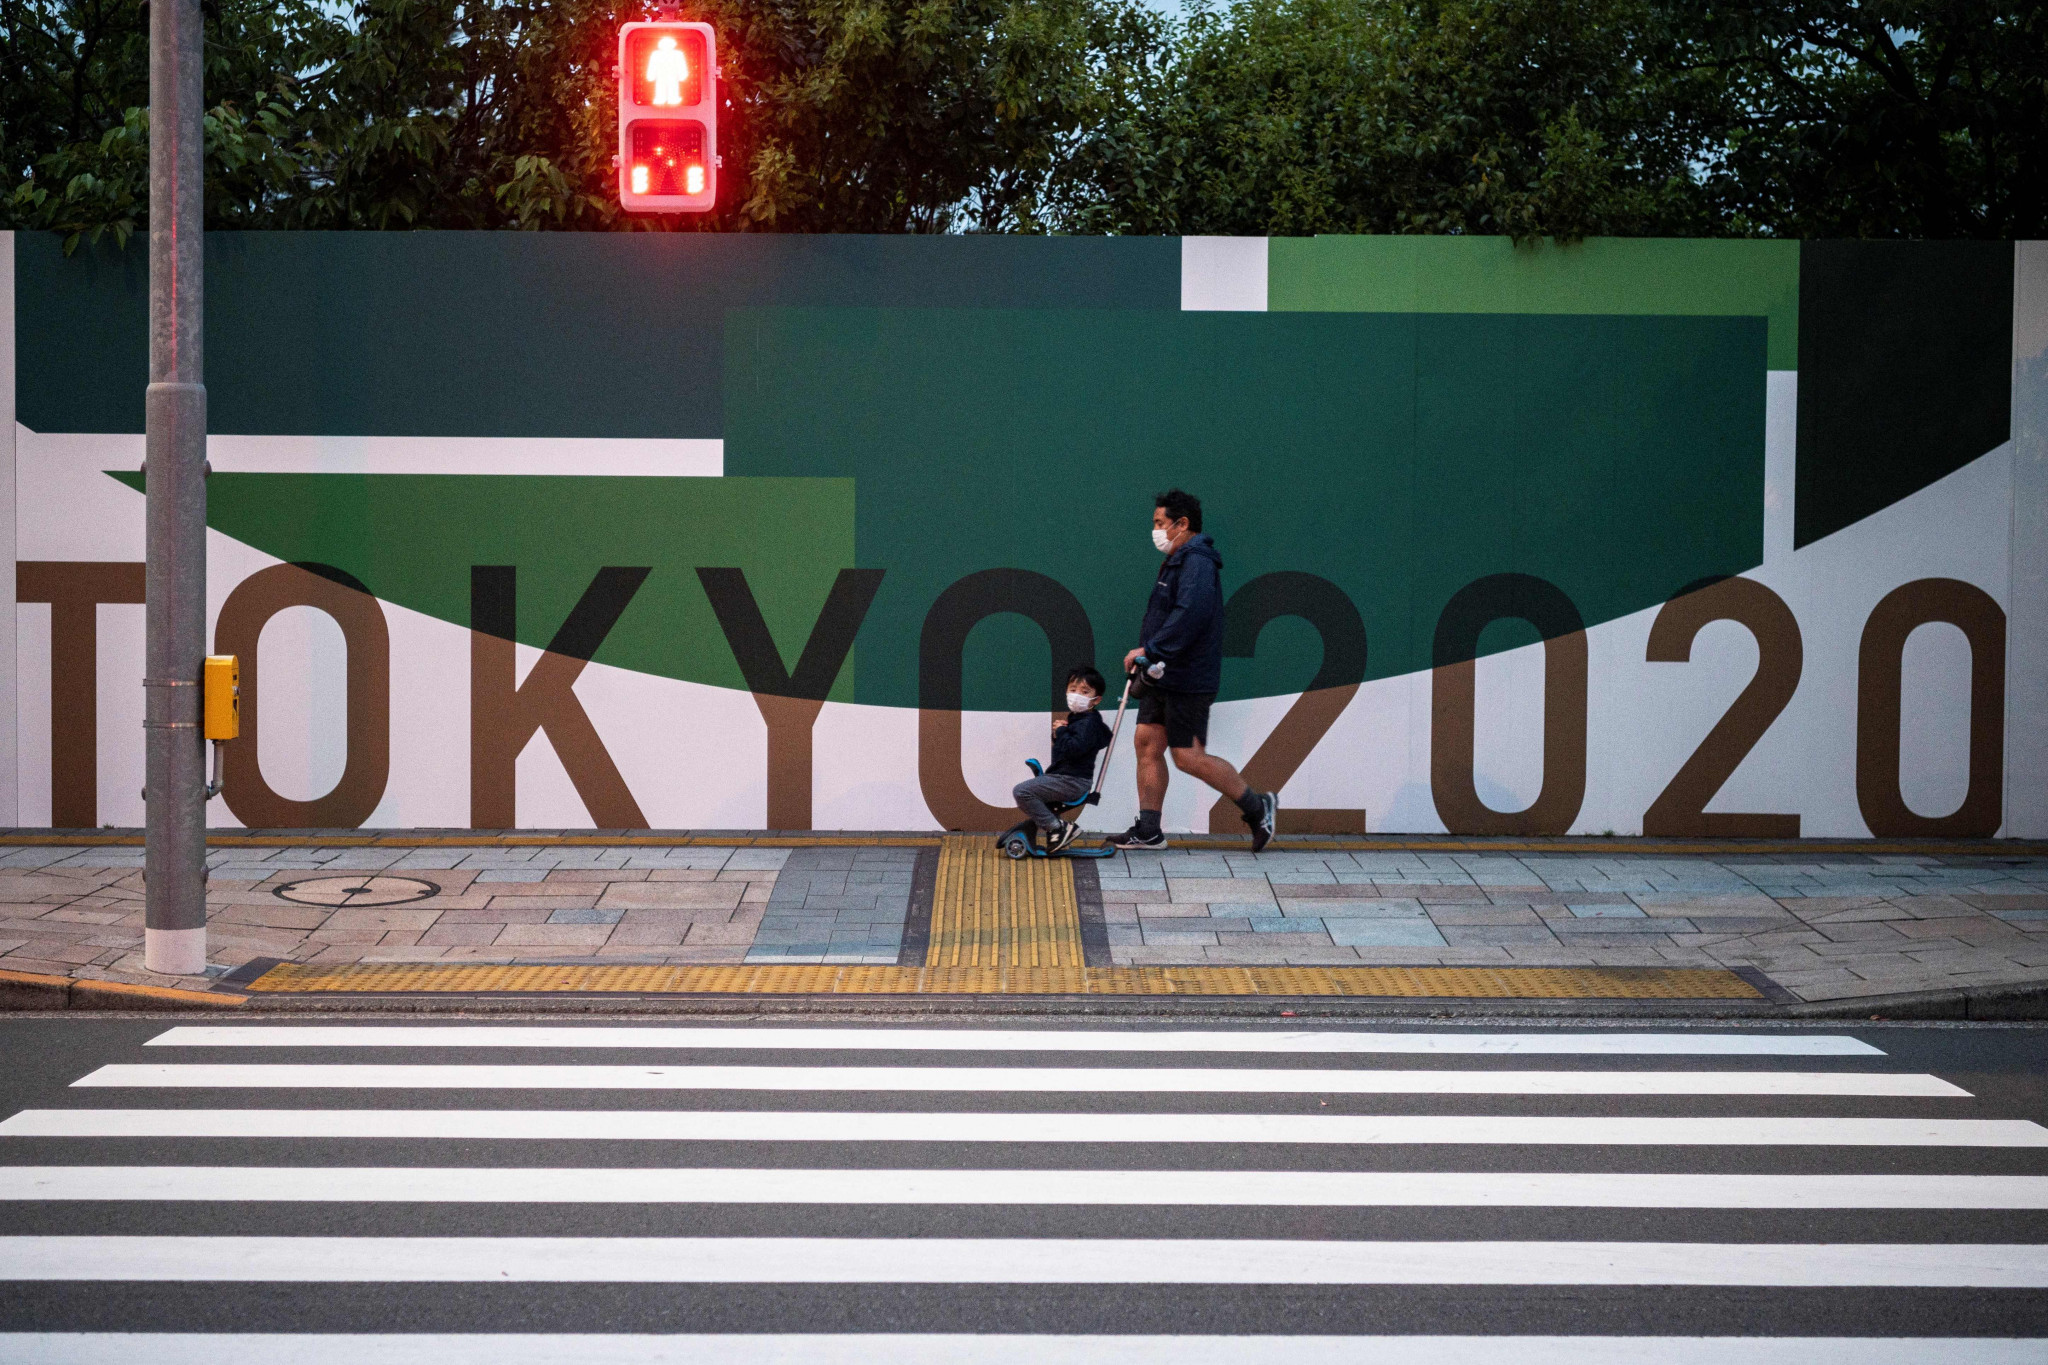 Tokyo 2020 is set to be held under strict COVID-19 countermeasures ©Getty Images